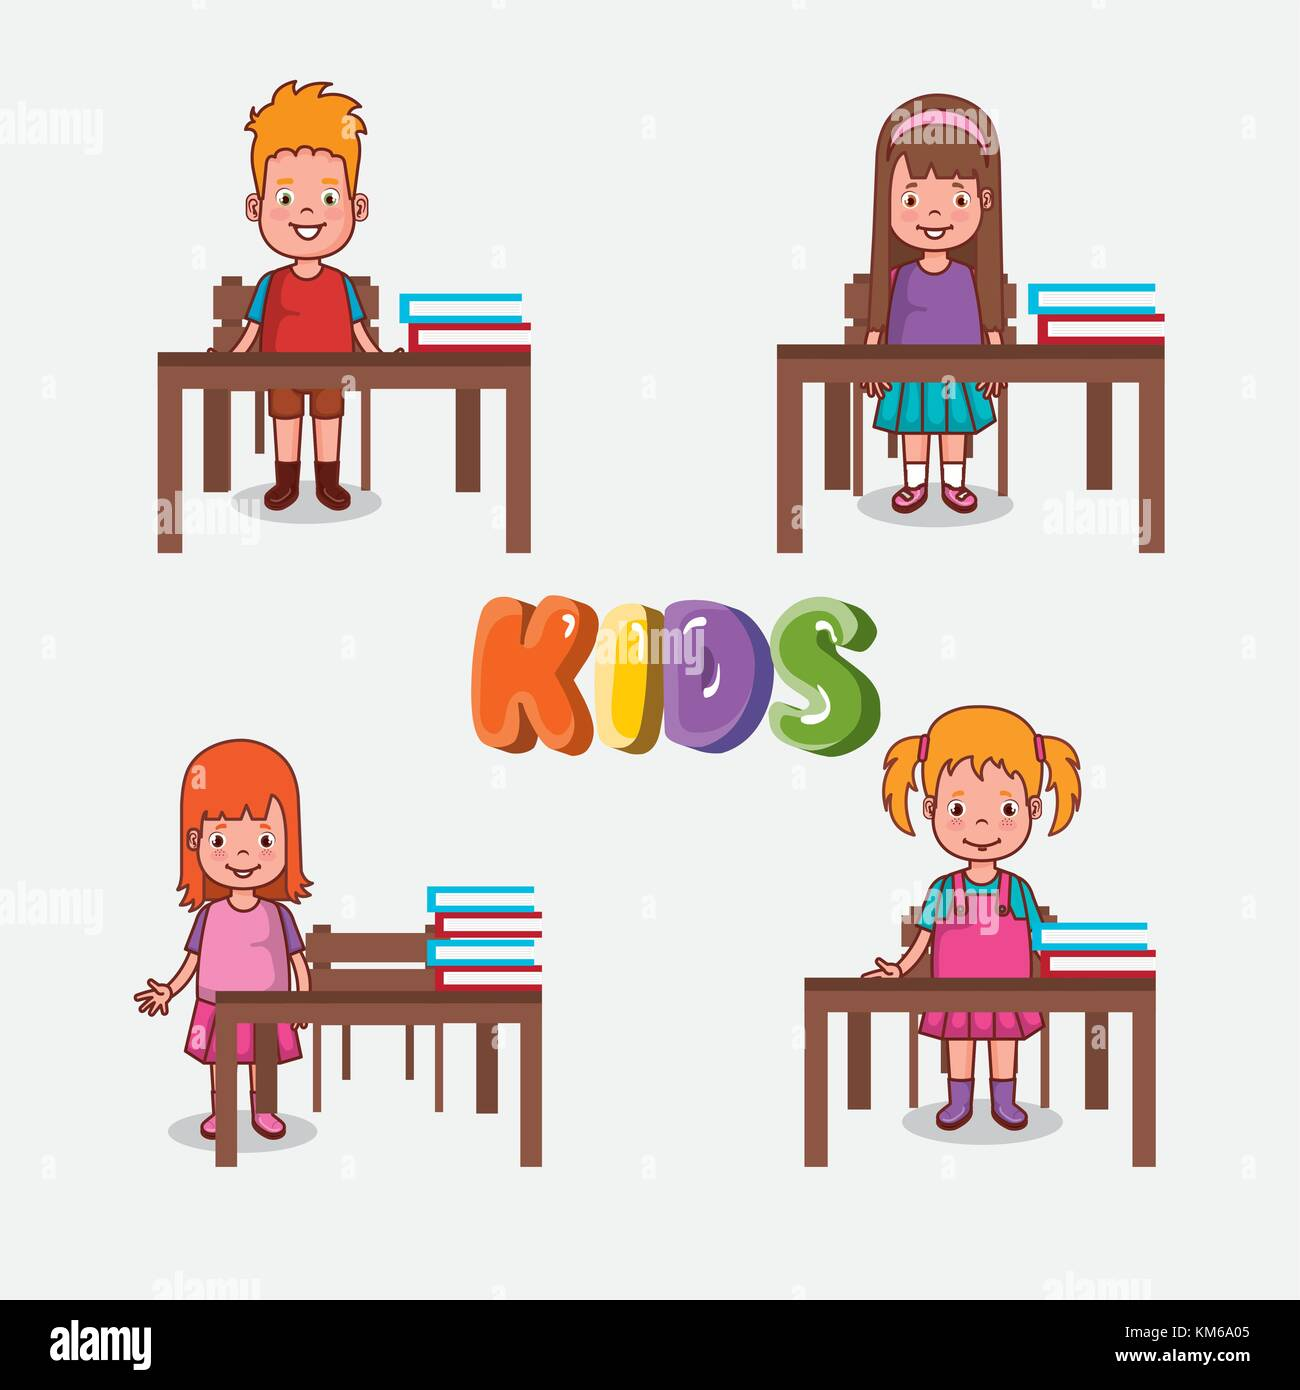 Clipart illustration preschool classroom stockfotos for Innenraumdesign studieren